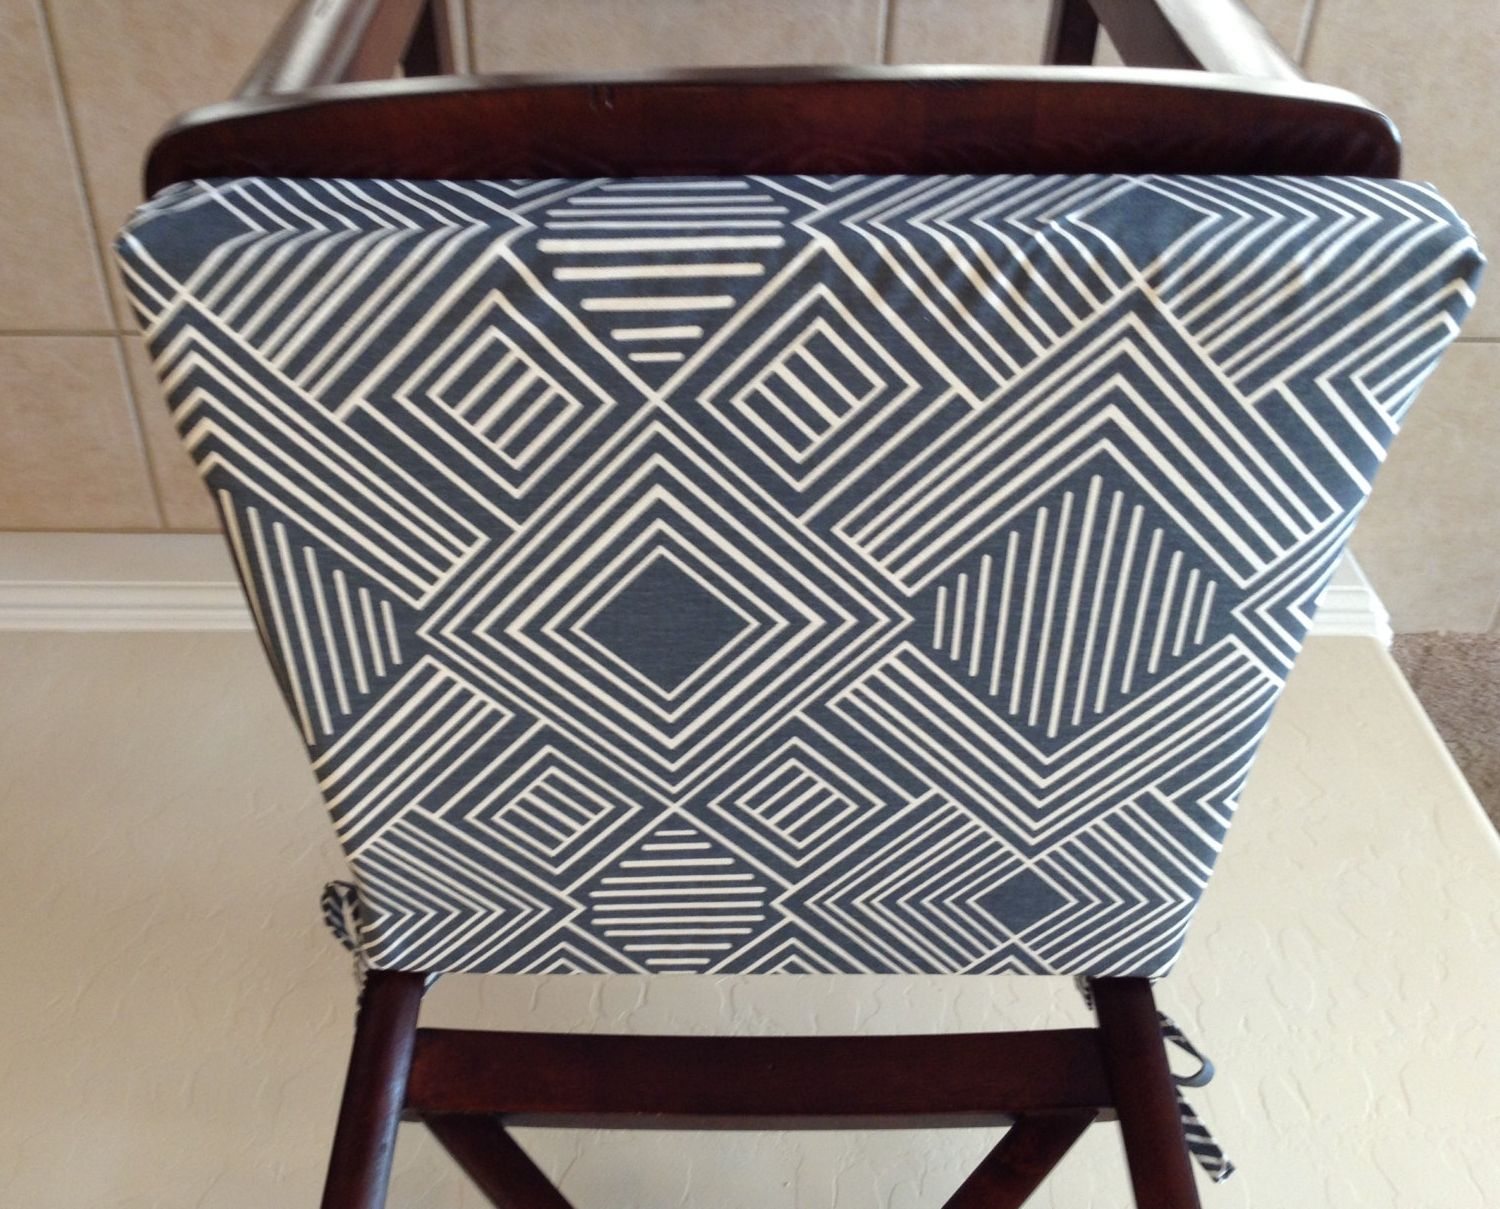 kitchen chair Geometric print seat cushion cover kitchen chair pad gunmetal blue gray on cream cotton fabric counter bar stool seat pad cover washable